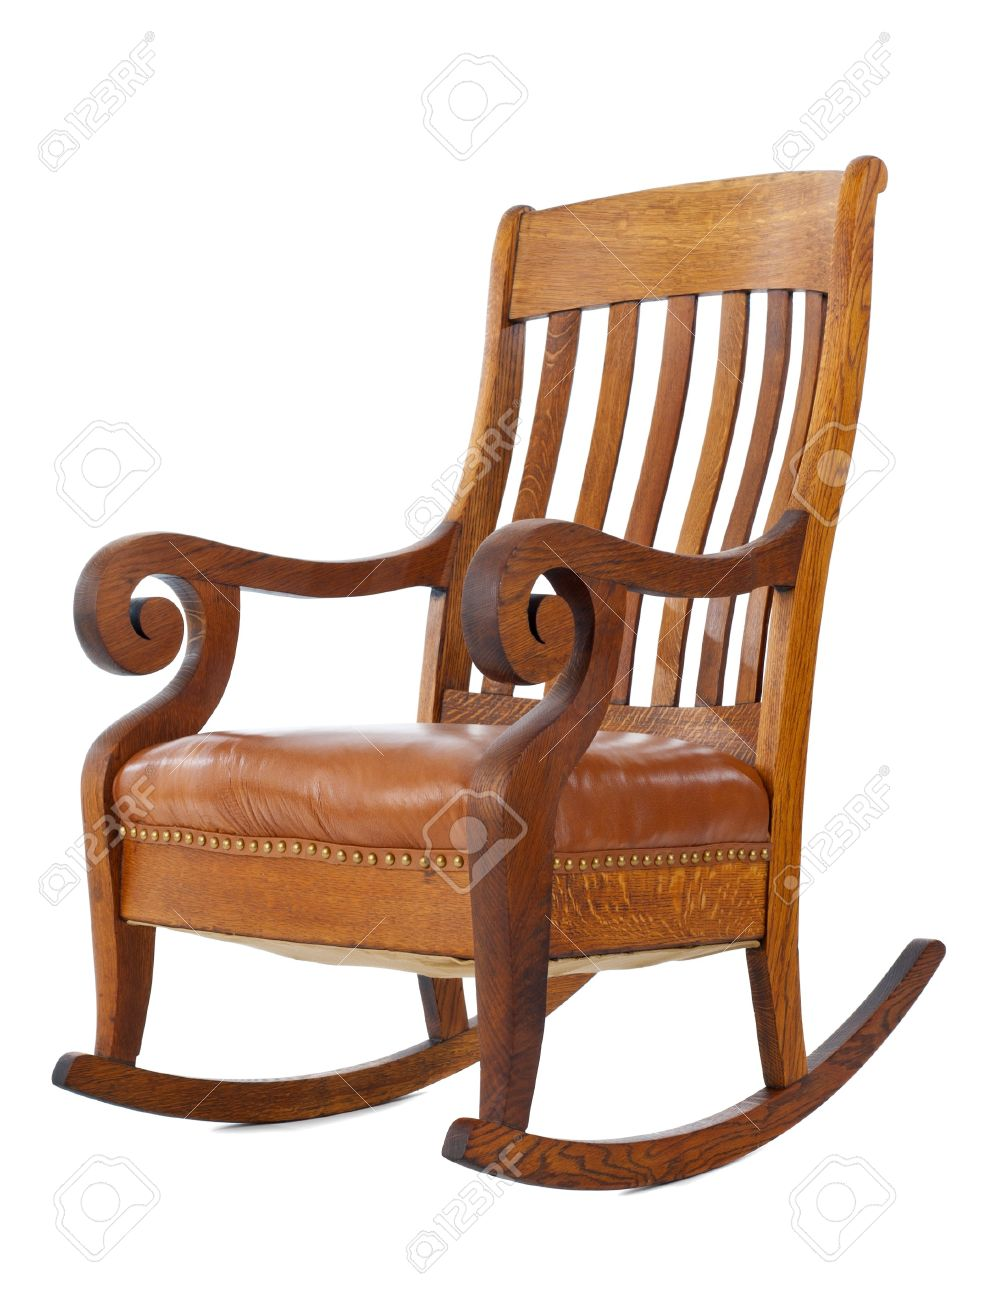 antique wooden rocking chairs wood pub table and chair isolated on white background stock photo 7439599